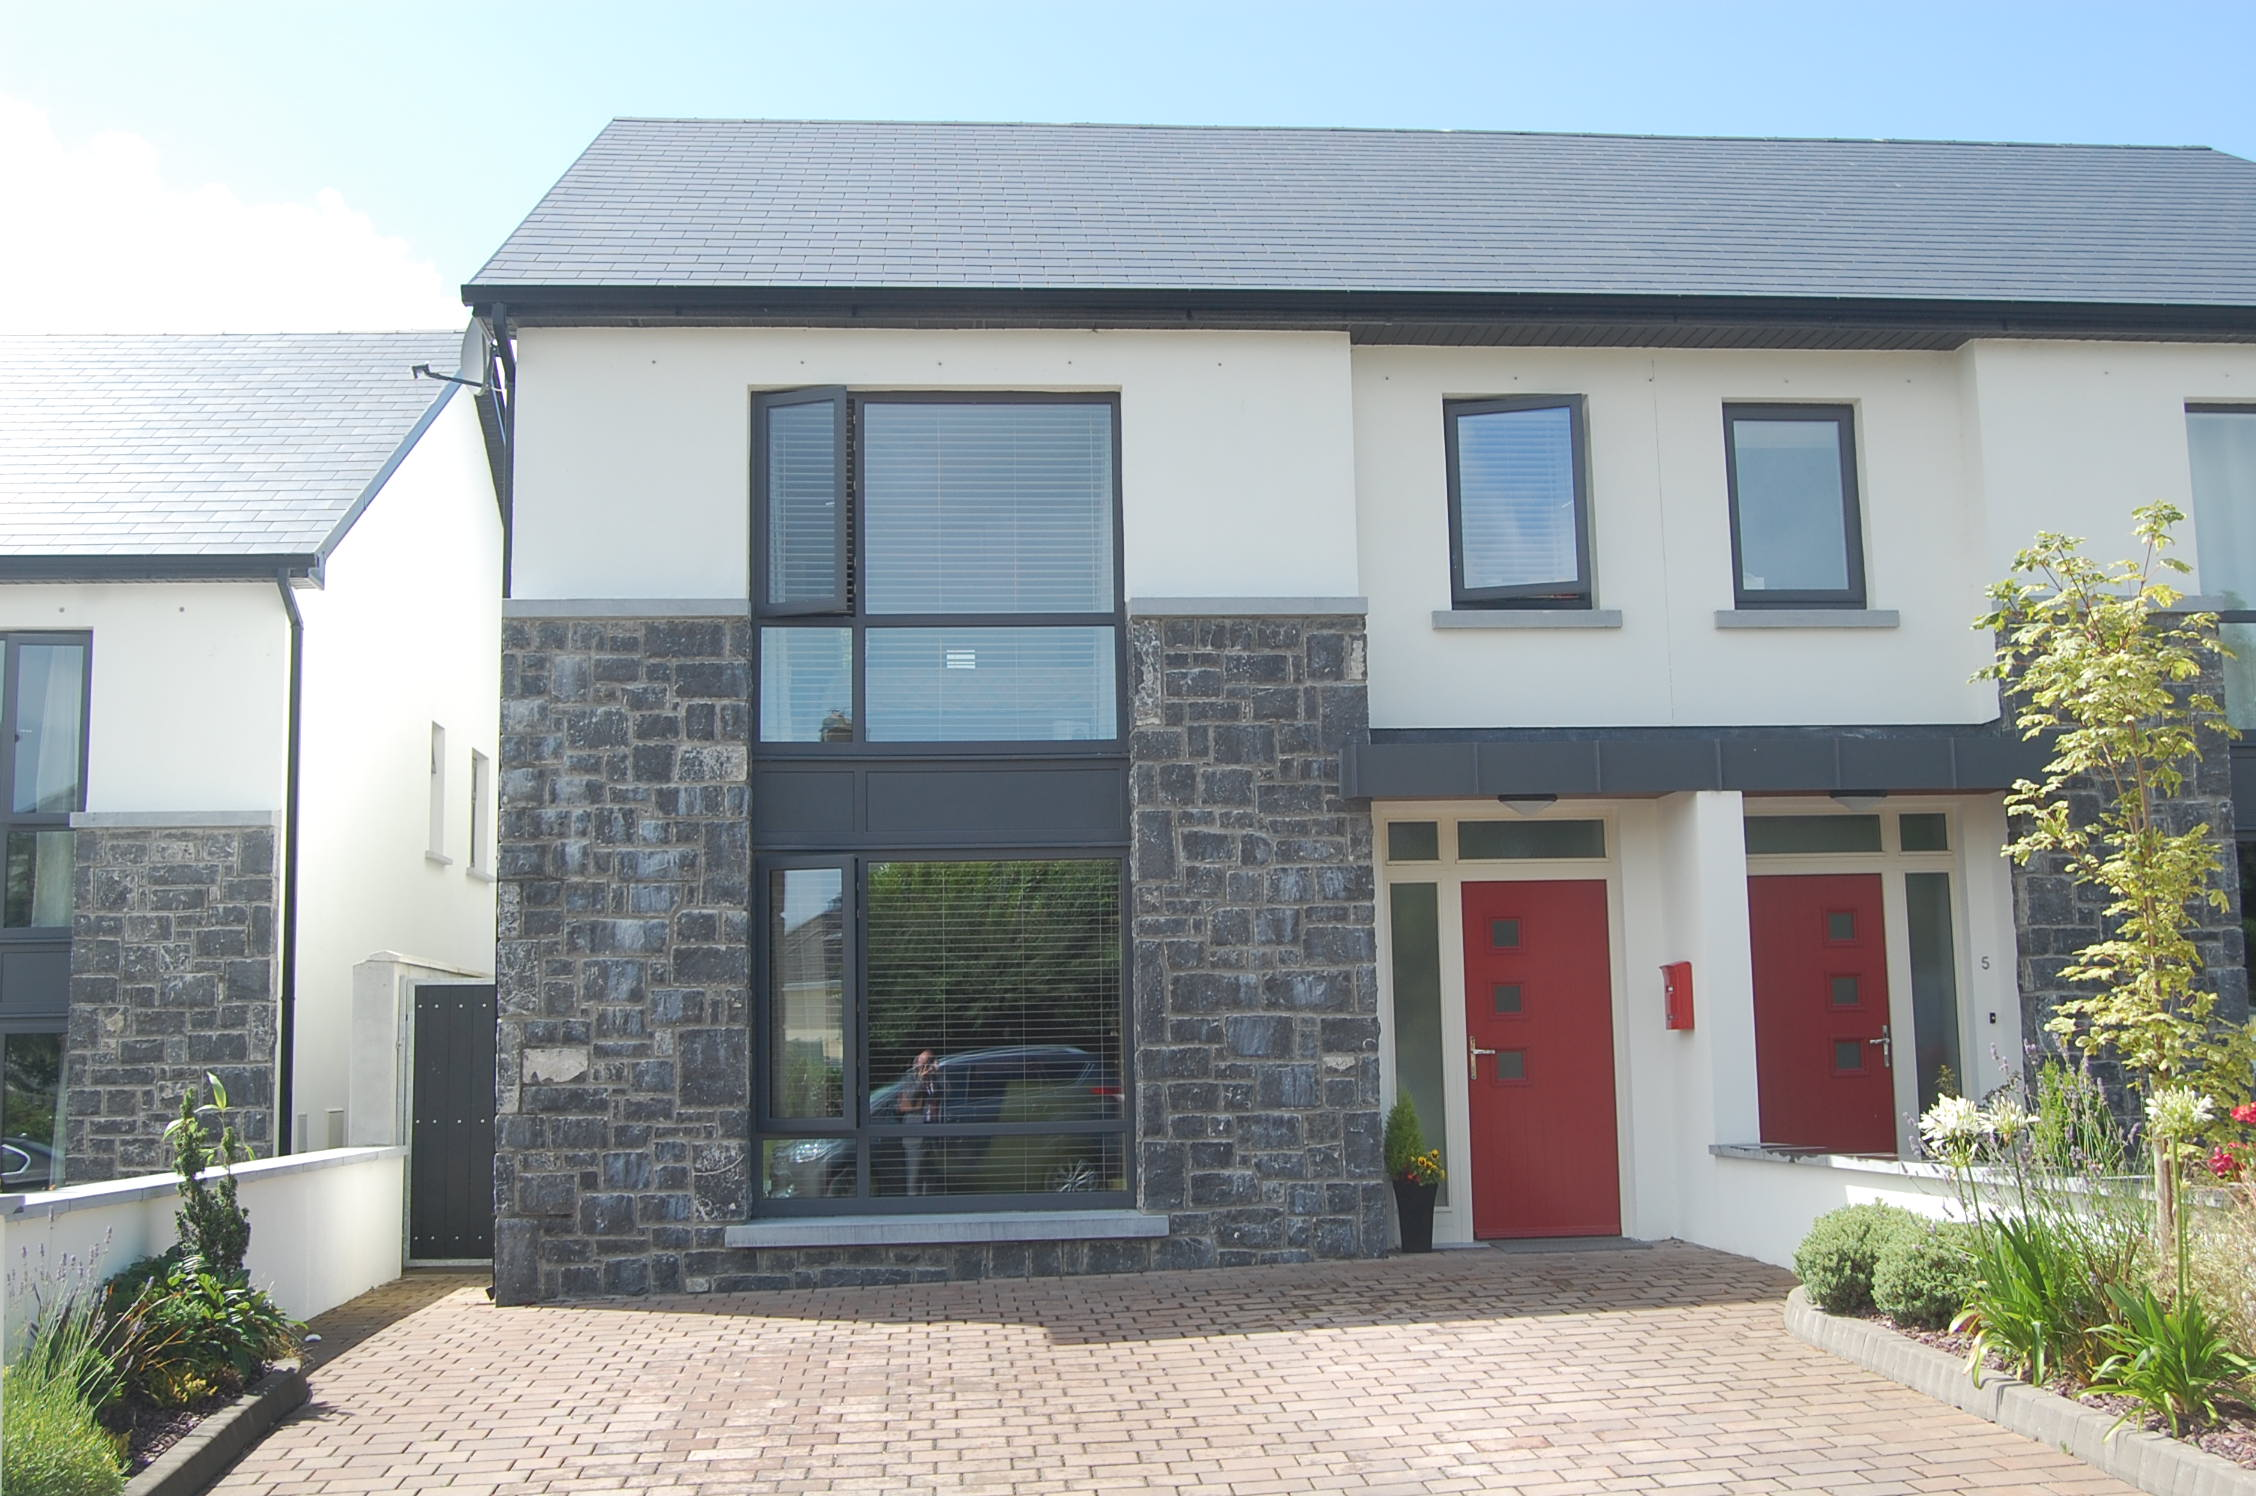 6 Gort an Duin, Oranhill, Oranmore, Co. Galway